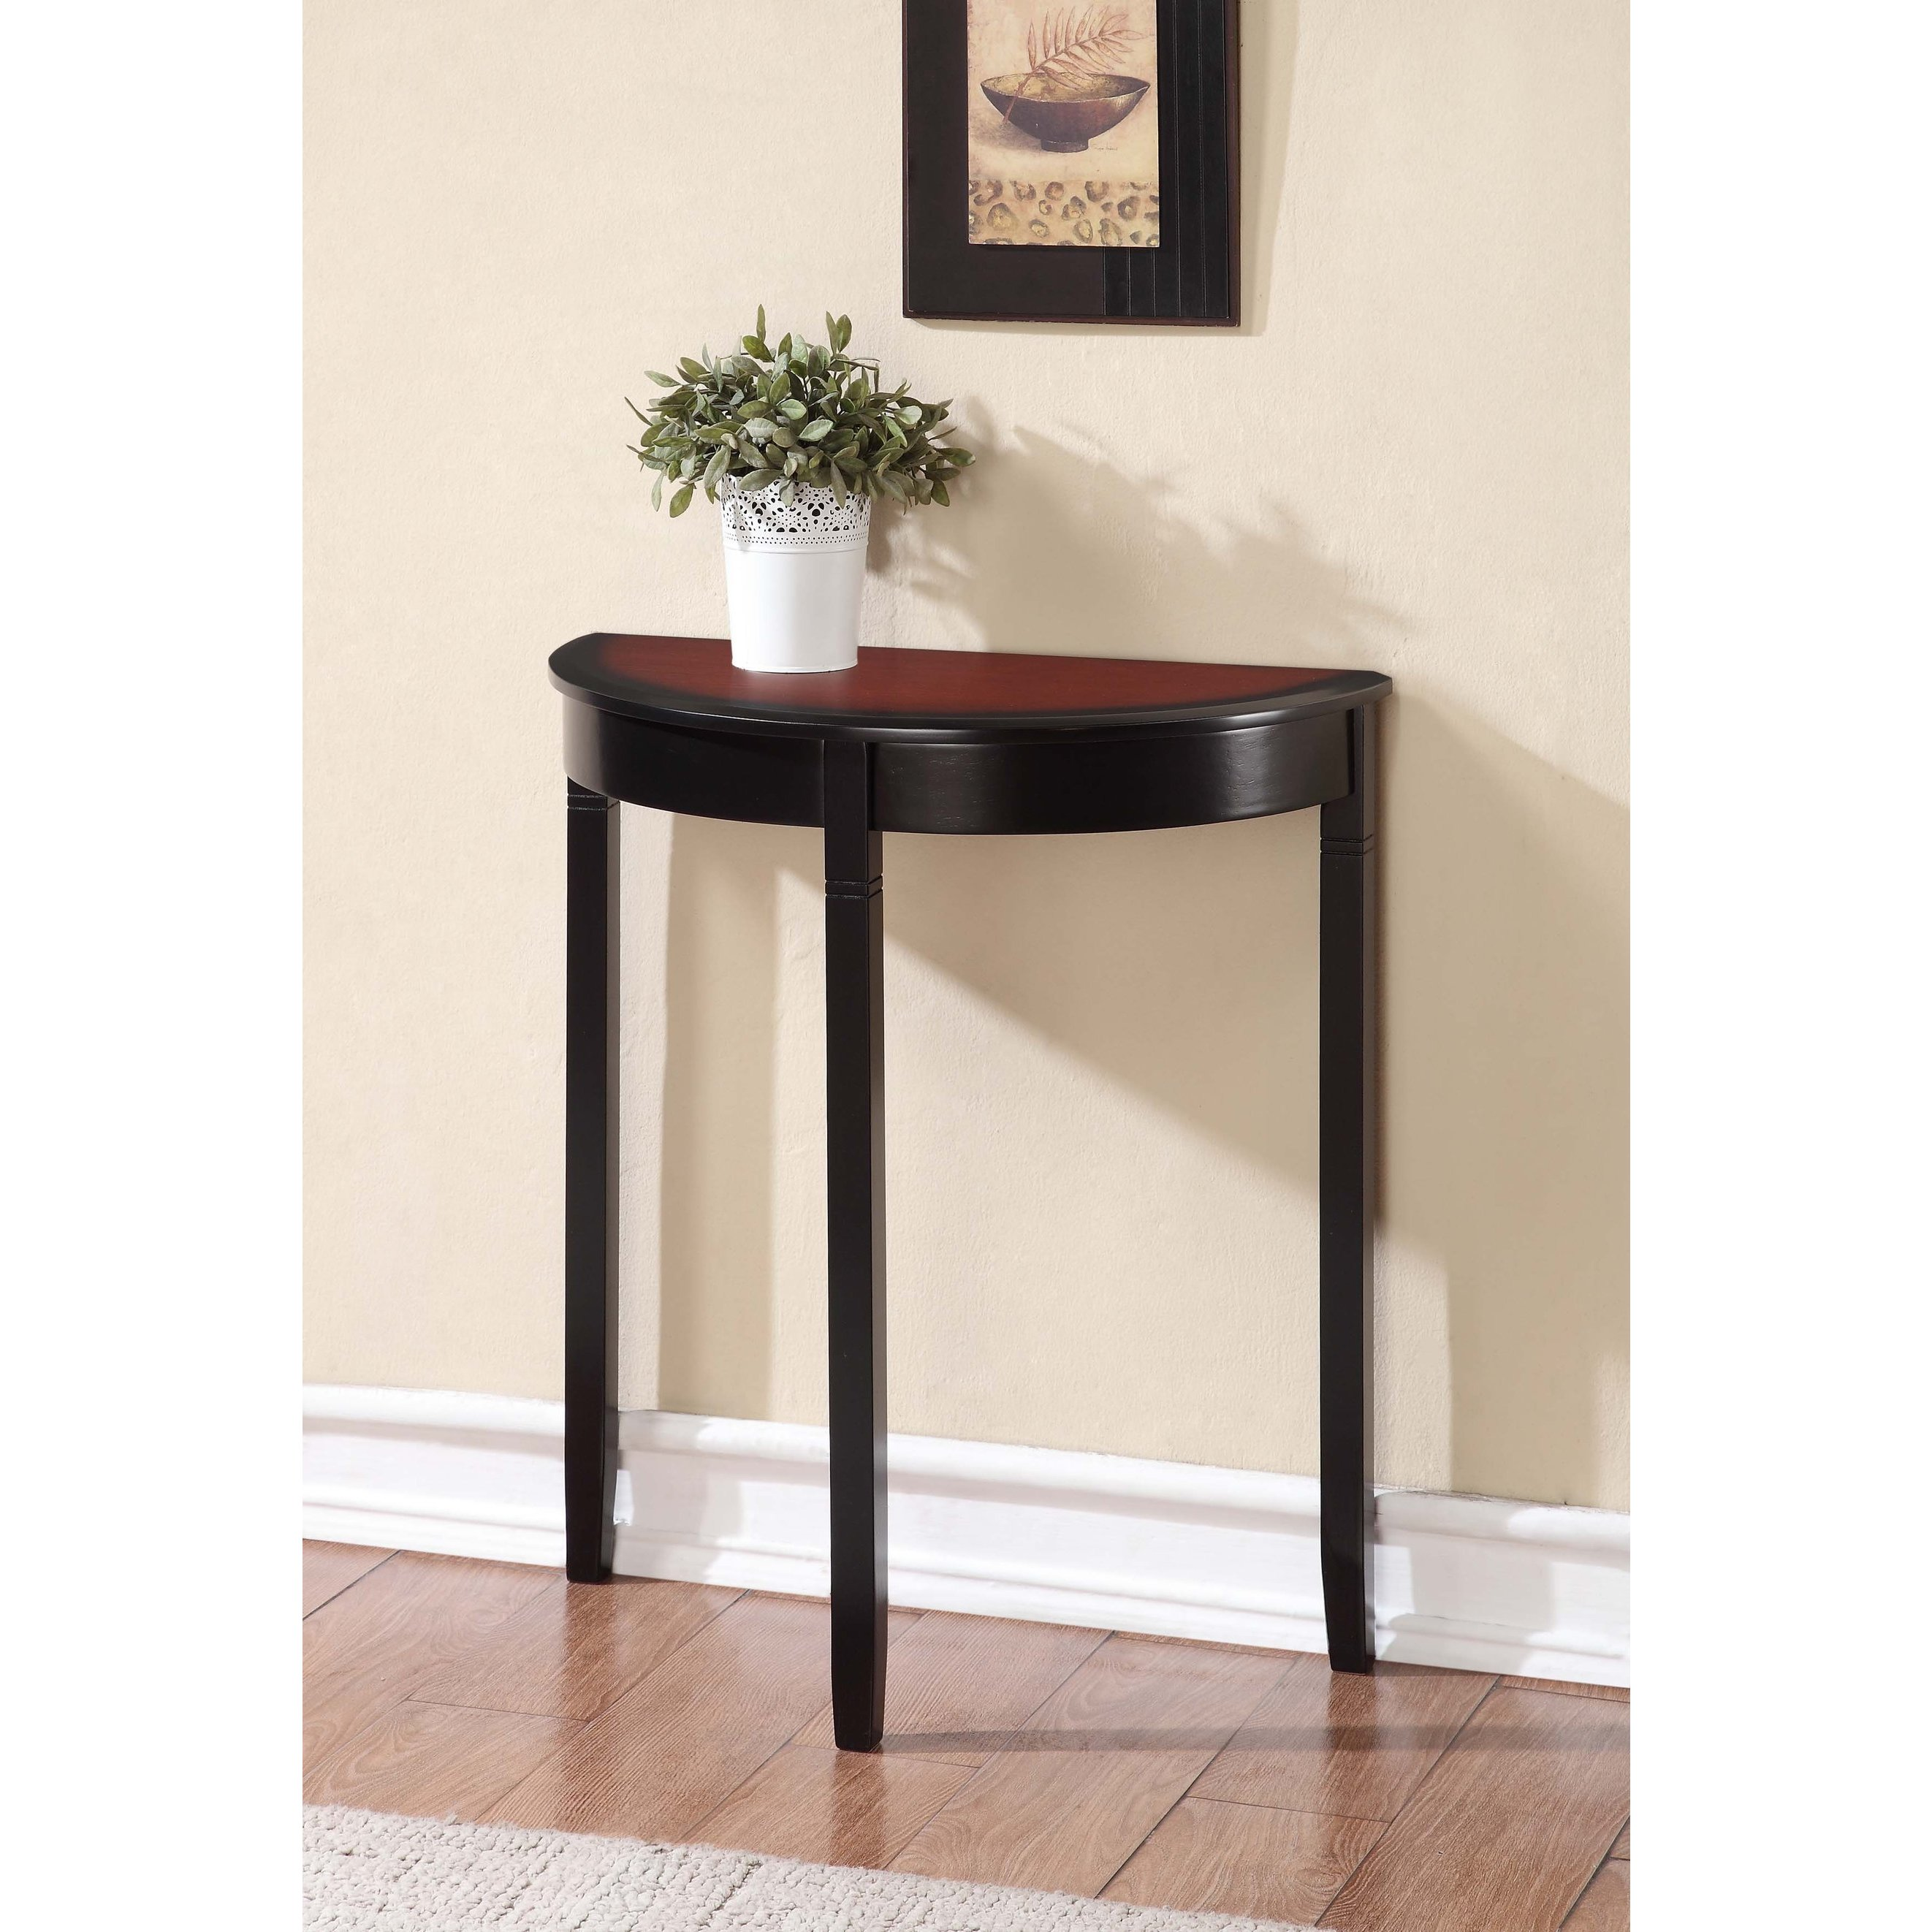 round gold accent table the fantastic cool small cherry wood end furniture demilune console with high legs and painted black color narrow hallway spaces ideas tables contemporary